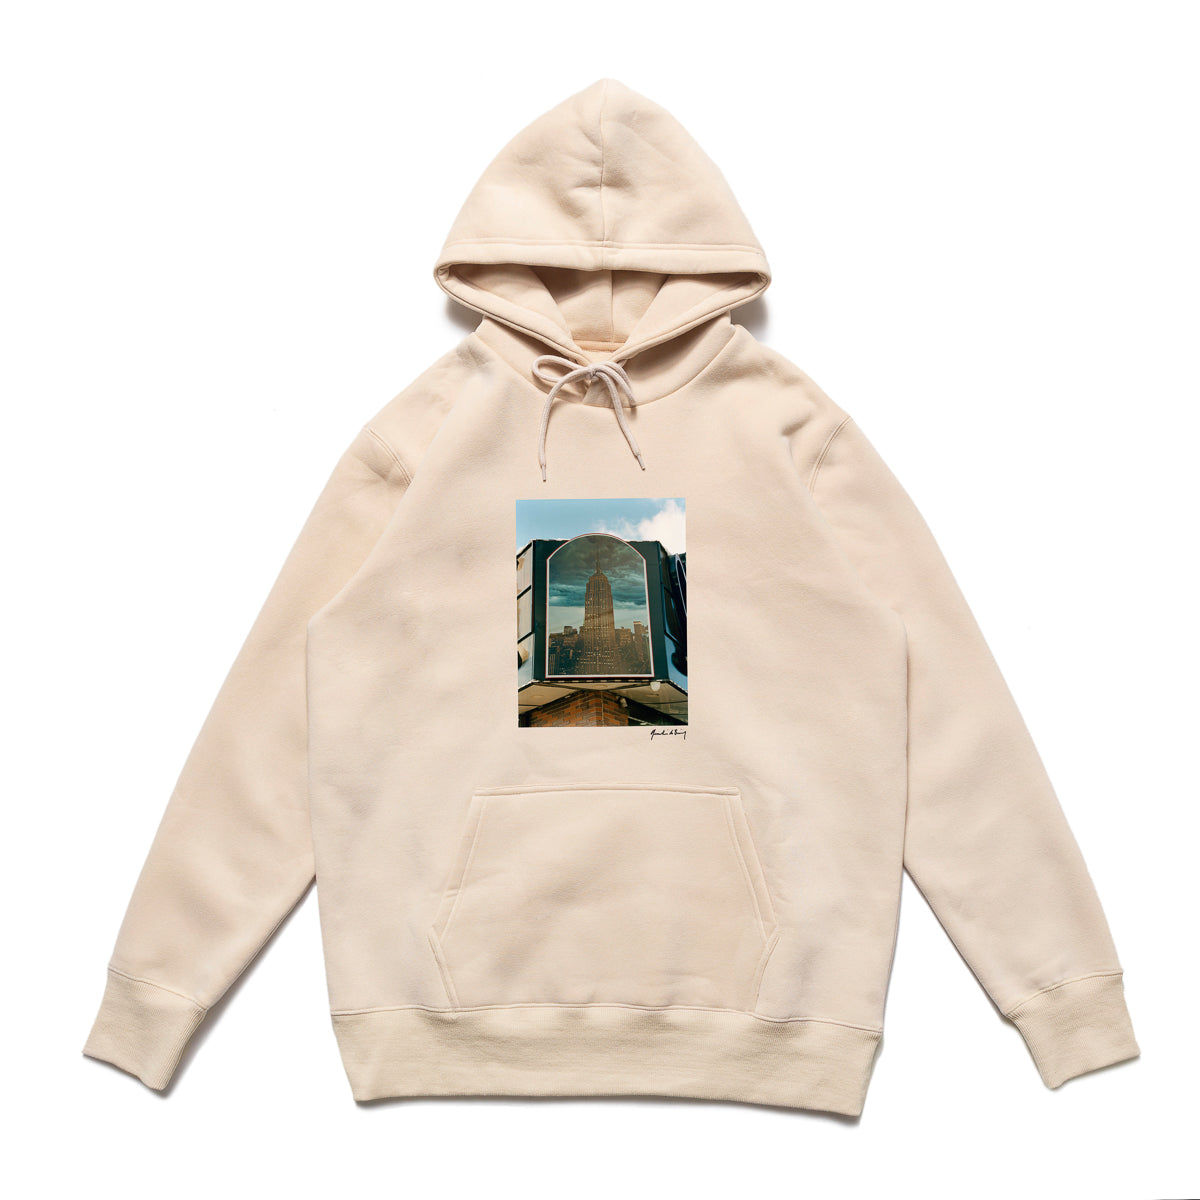 Load image into Gallery viewer, Quentin De Briey photo pullover sweater _ Empire State Building